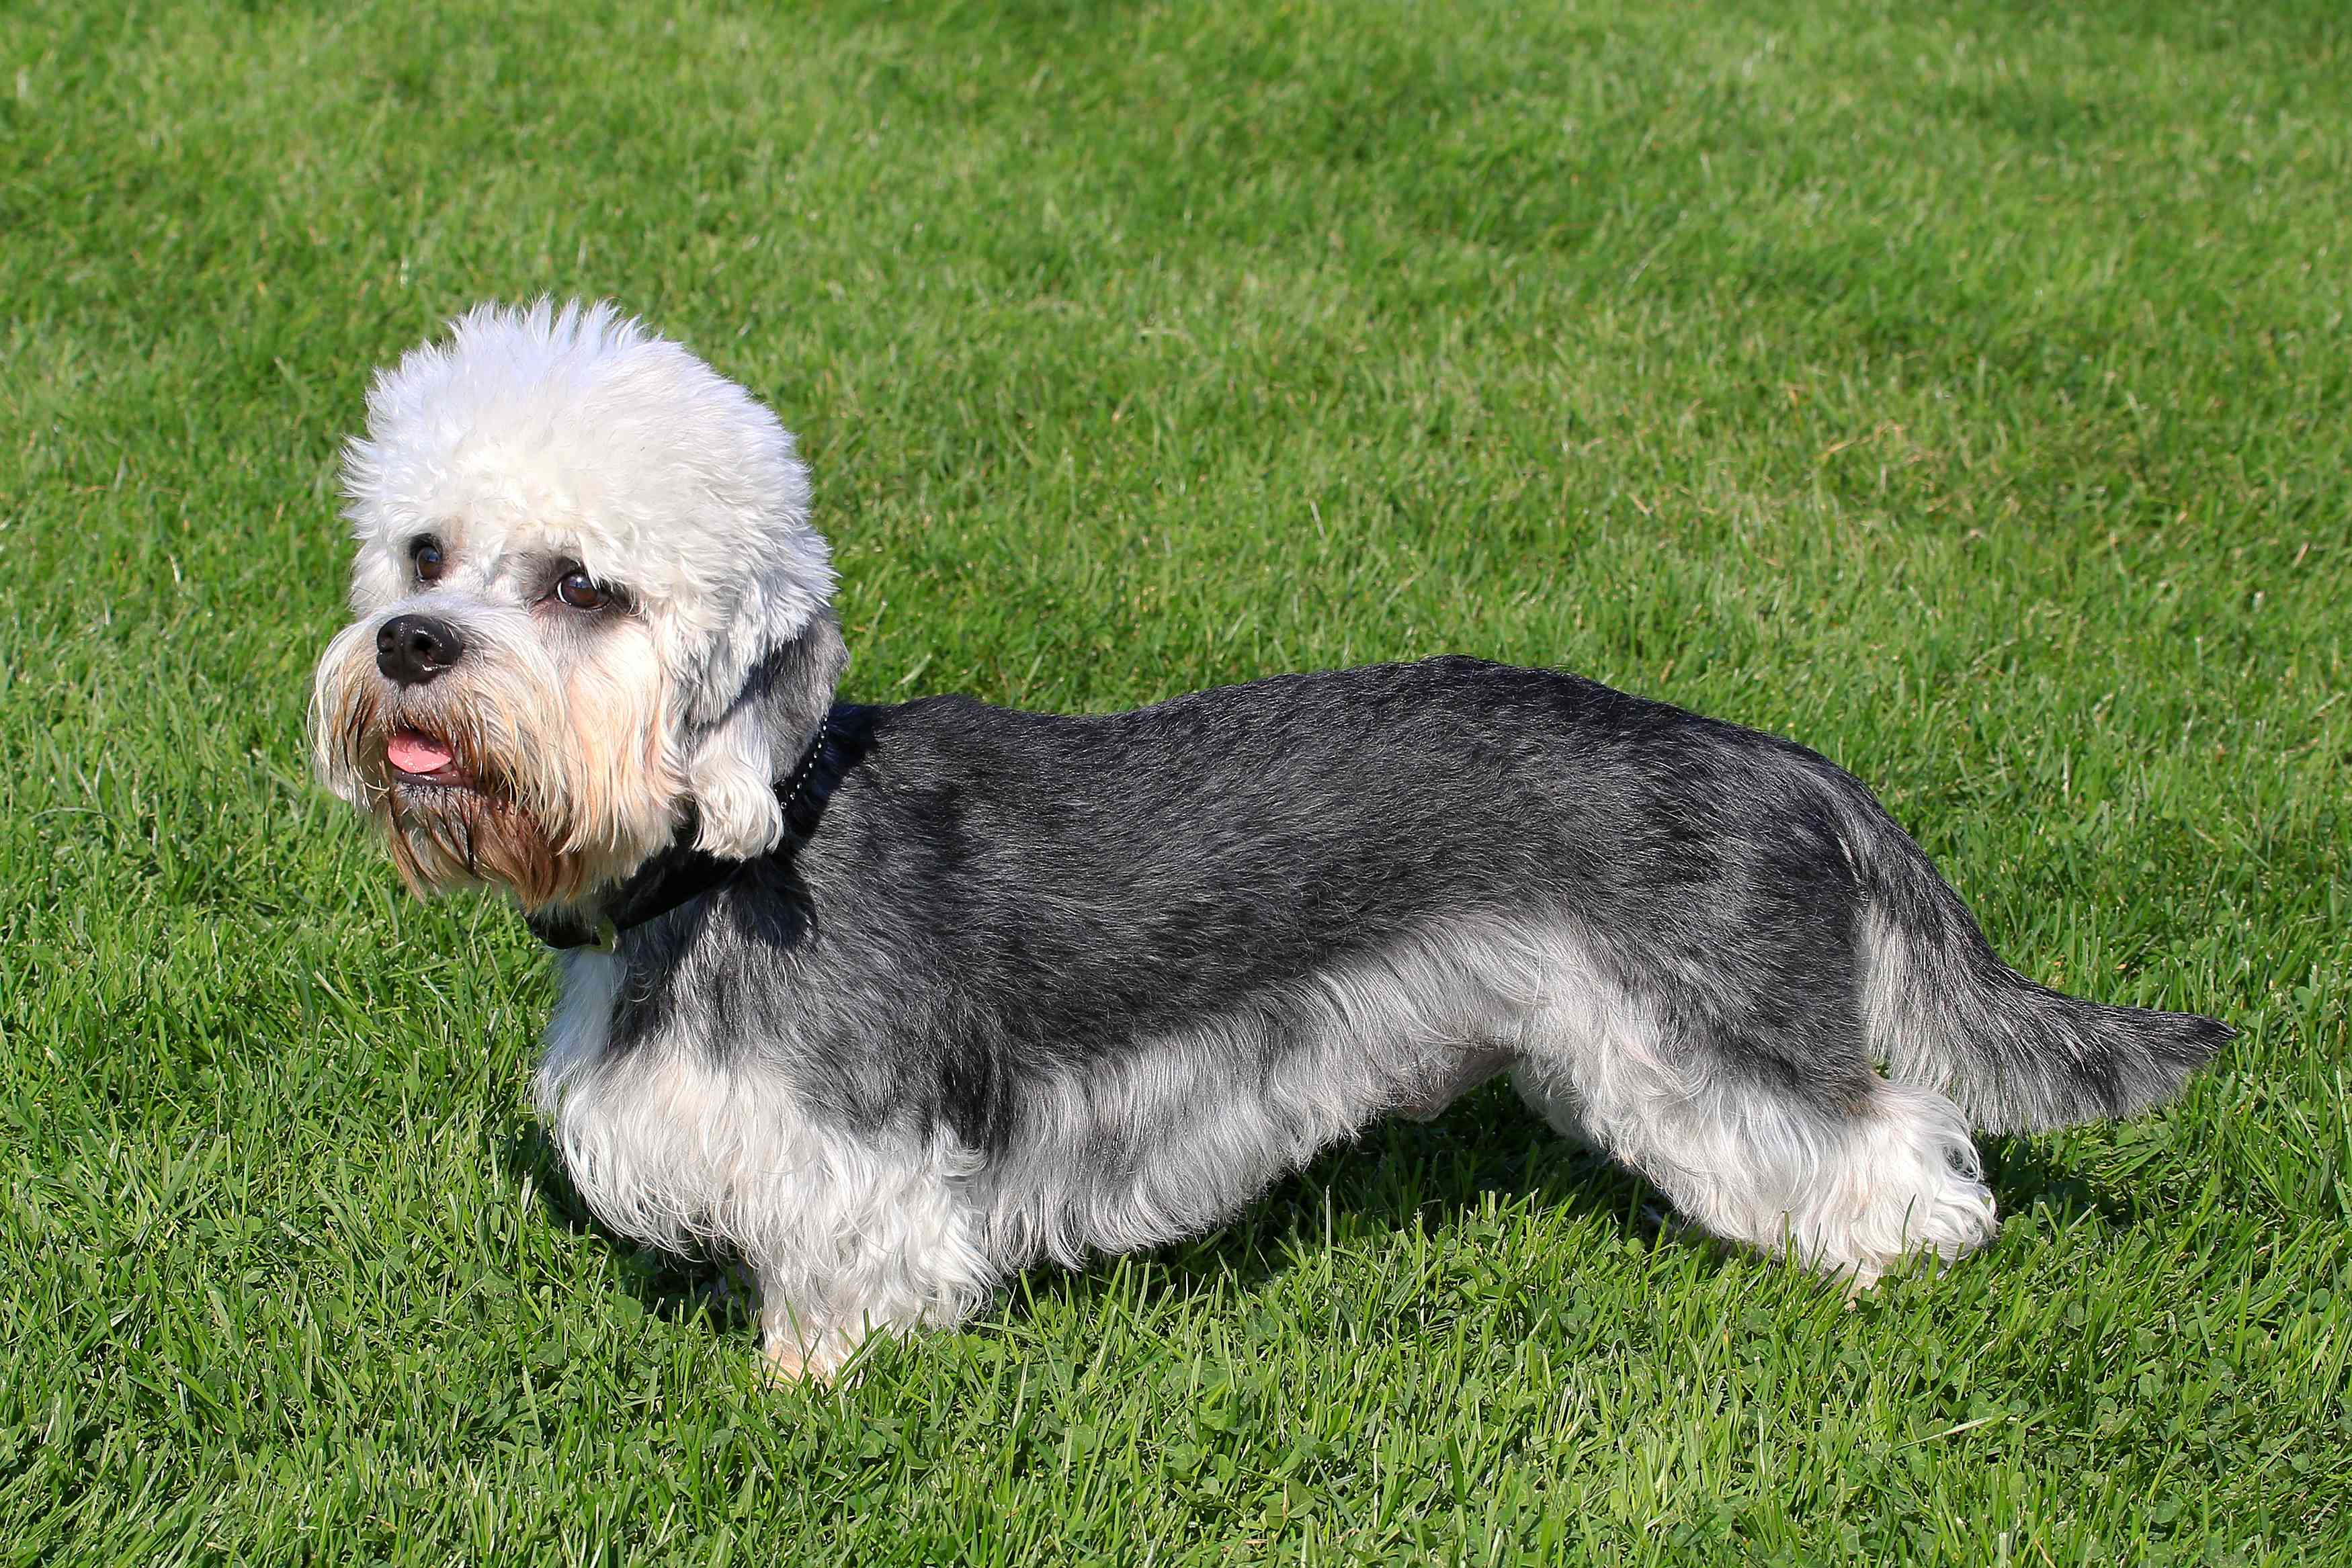 profile of gray and white Dandie Dinmont Terrier on green grass lawn